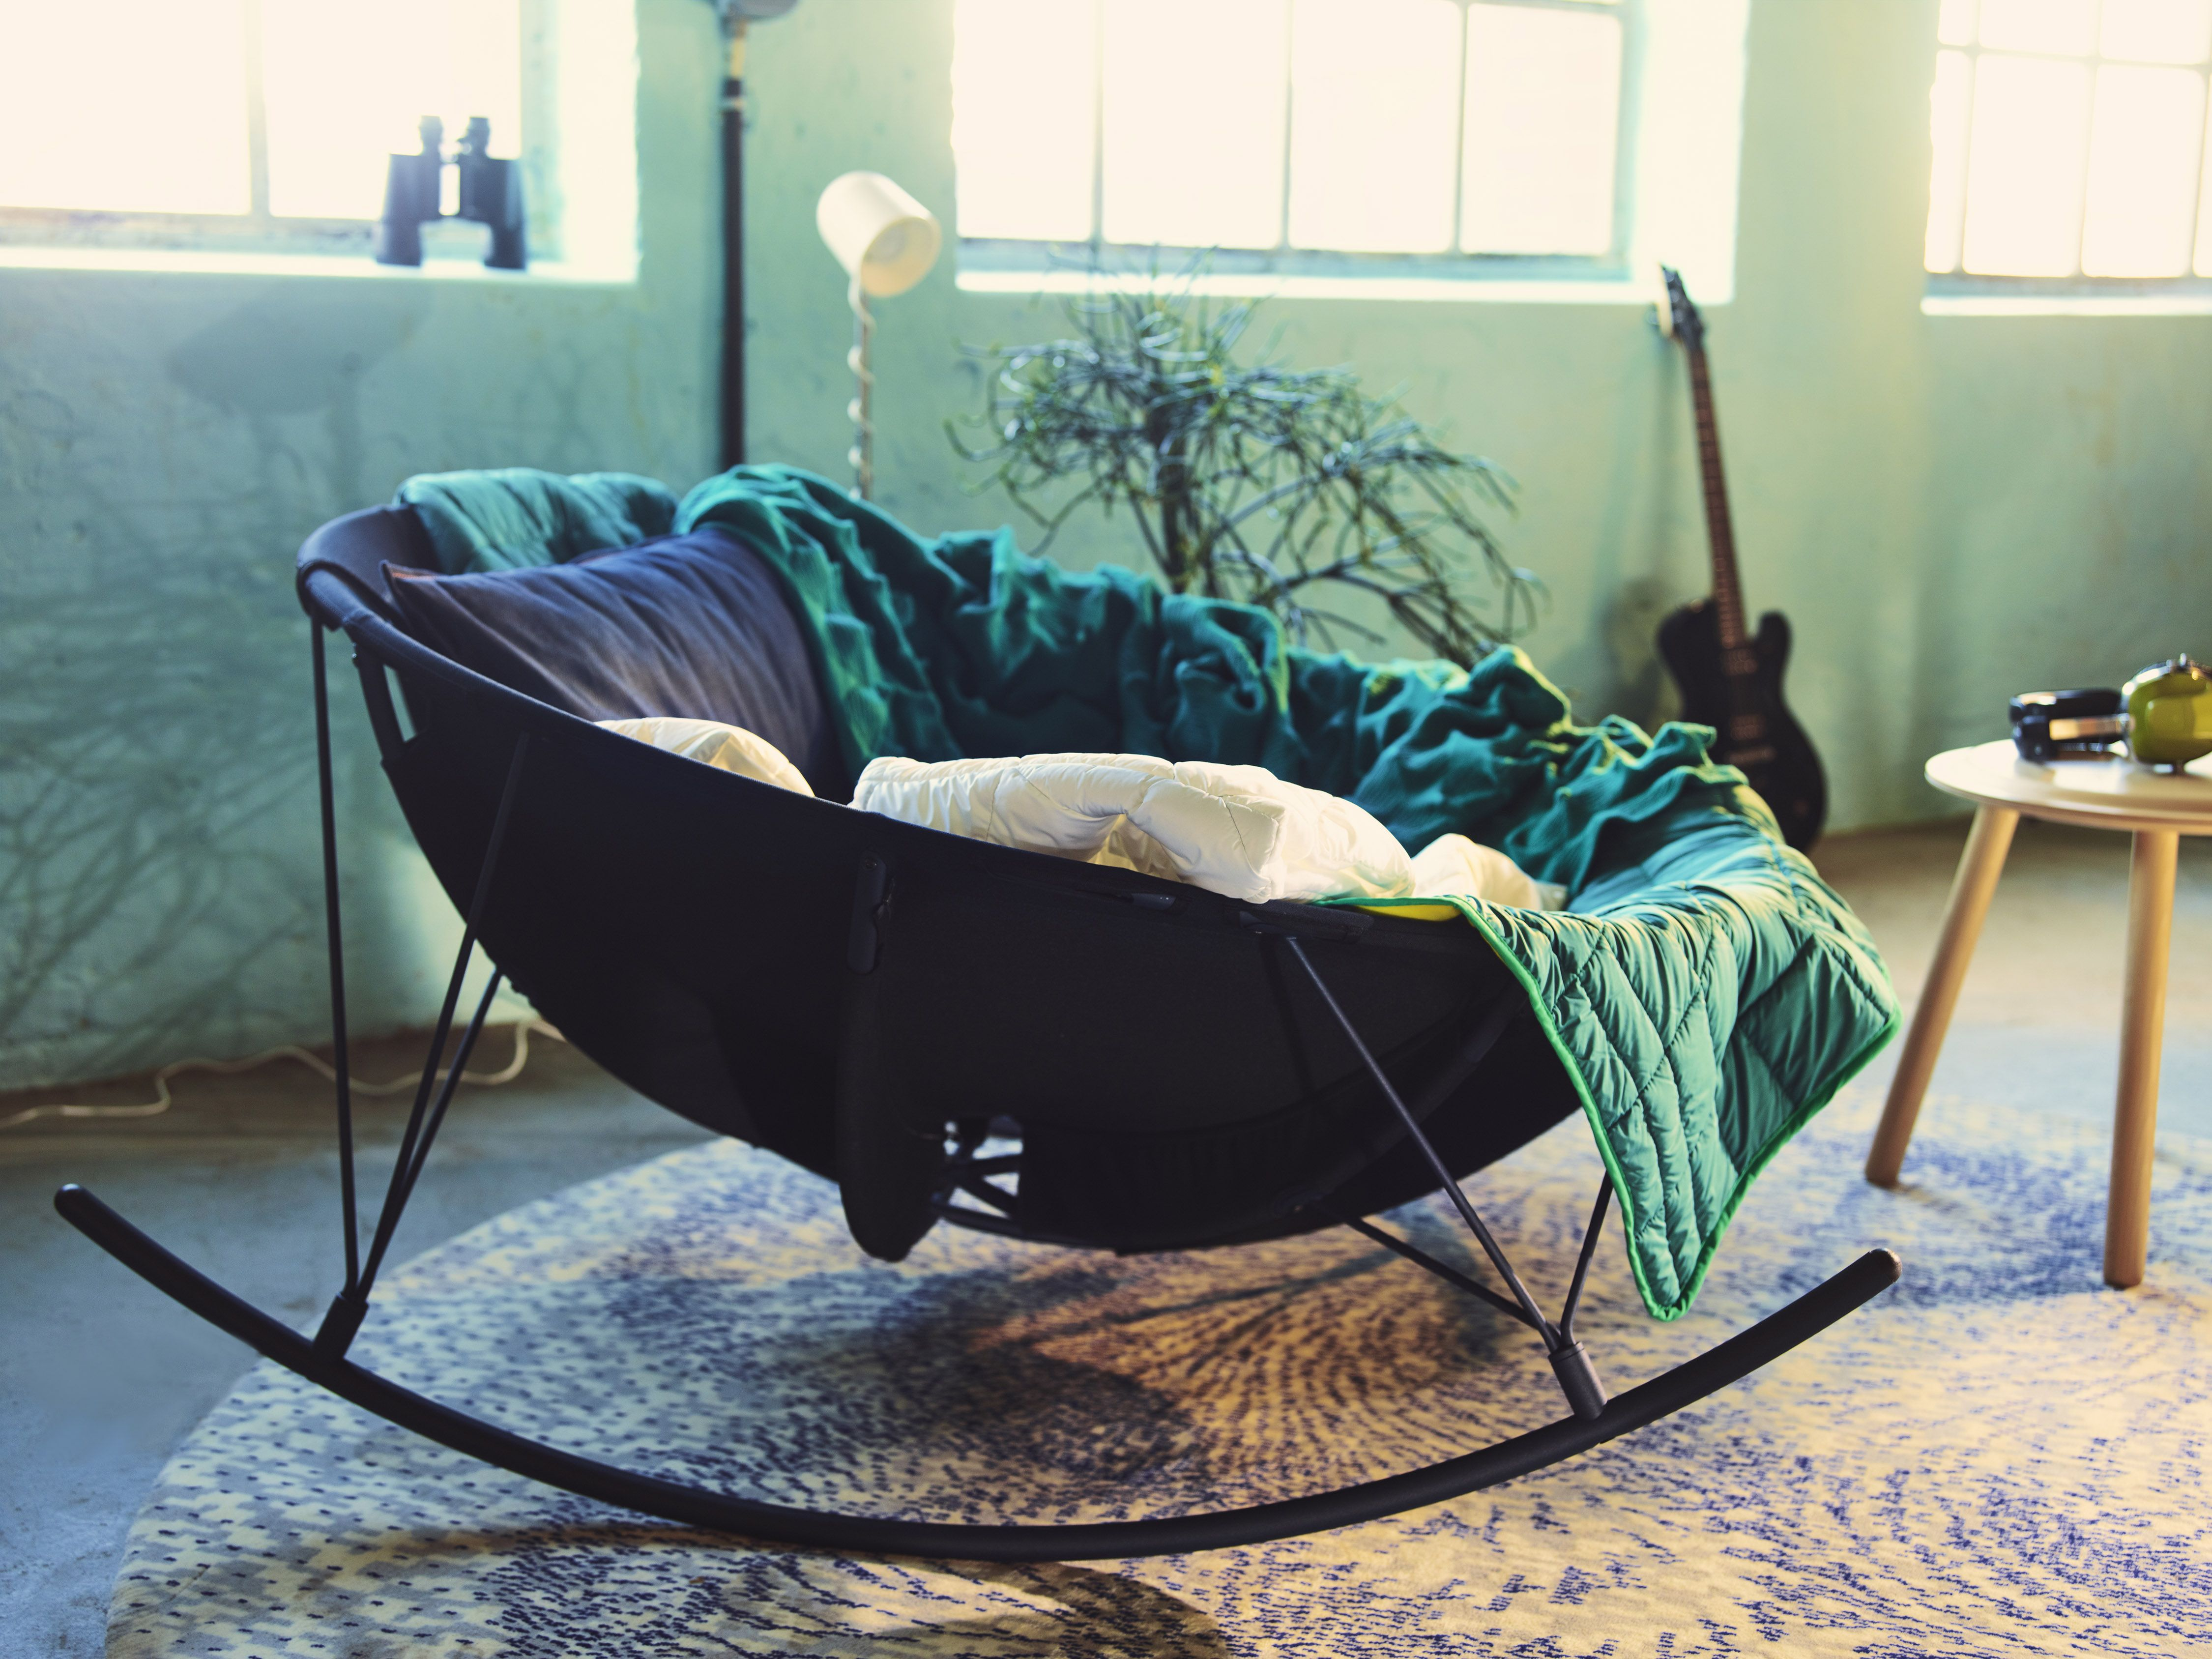 Ikea Schommelstoel Rocking Chair, Baby Sofa Chair, Bedroom Chair, Pod Chair,